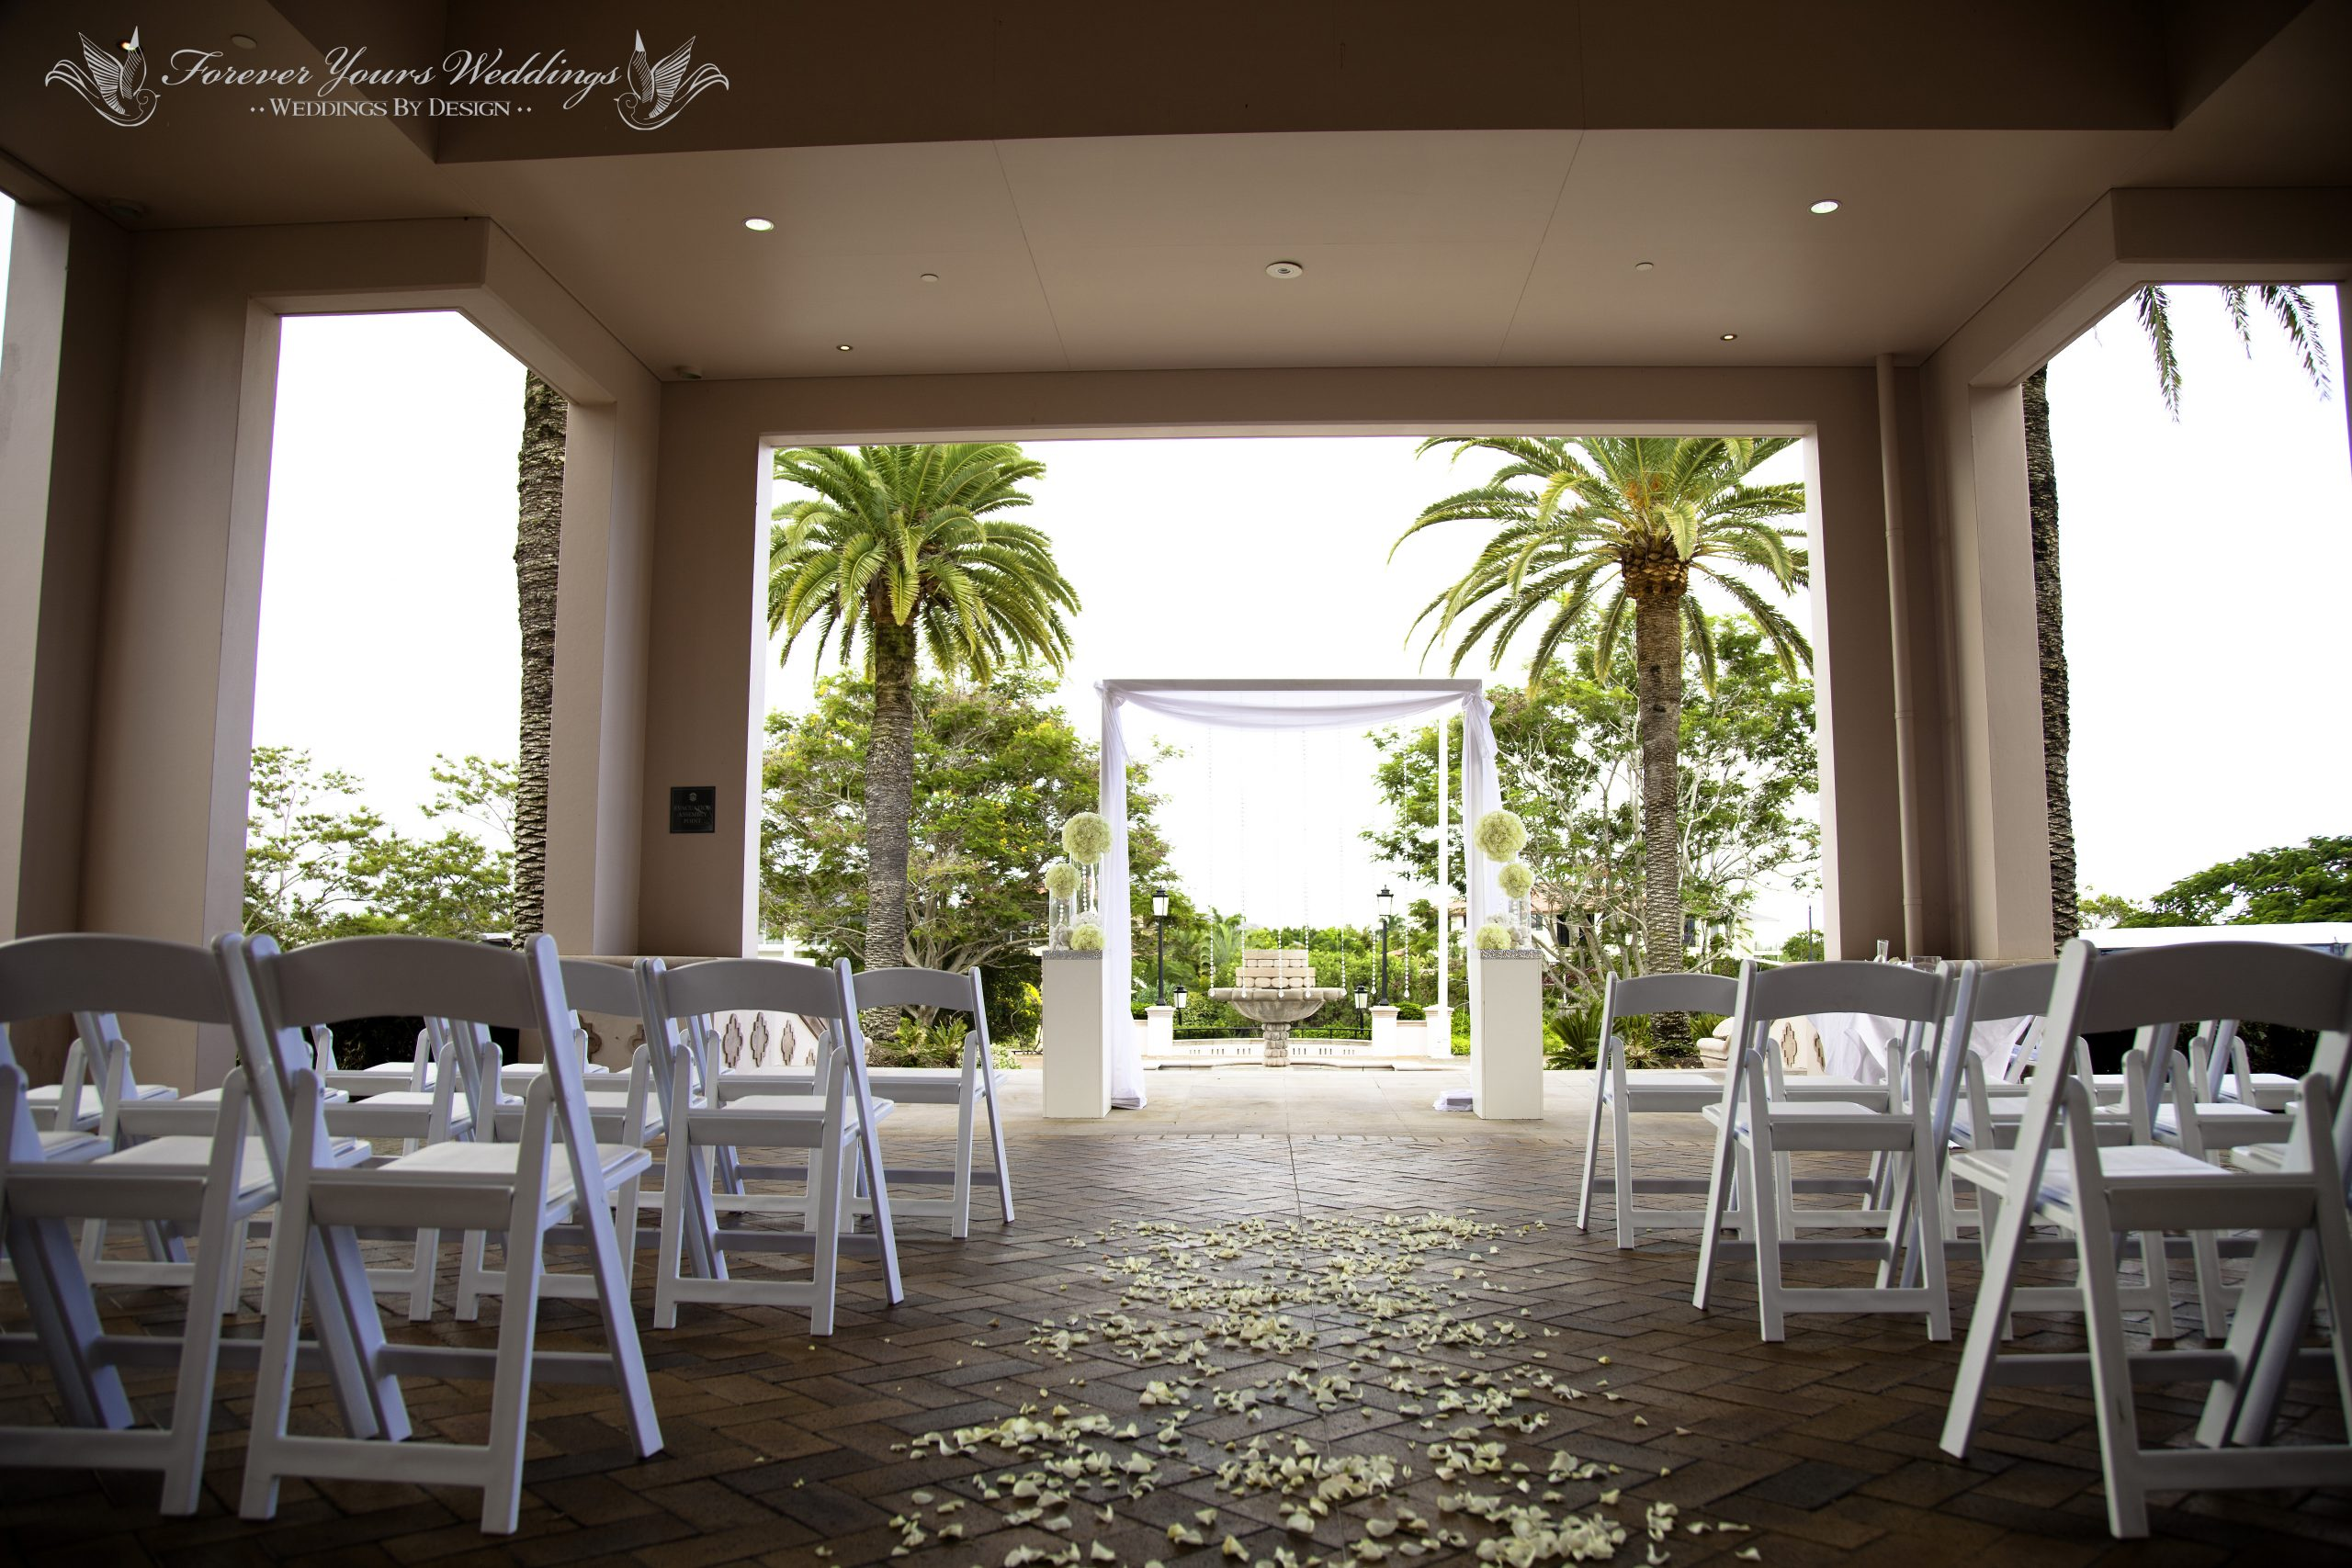 Gold Coast Wedding Decorations Forever Yours Weddings